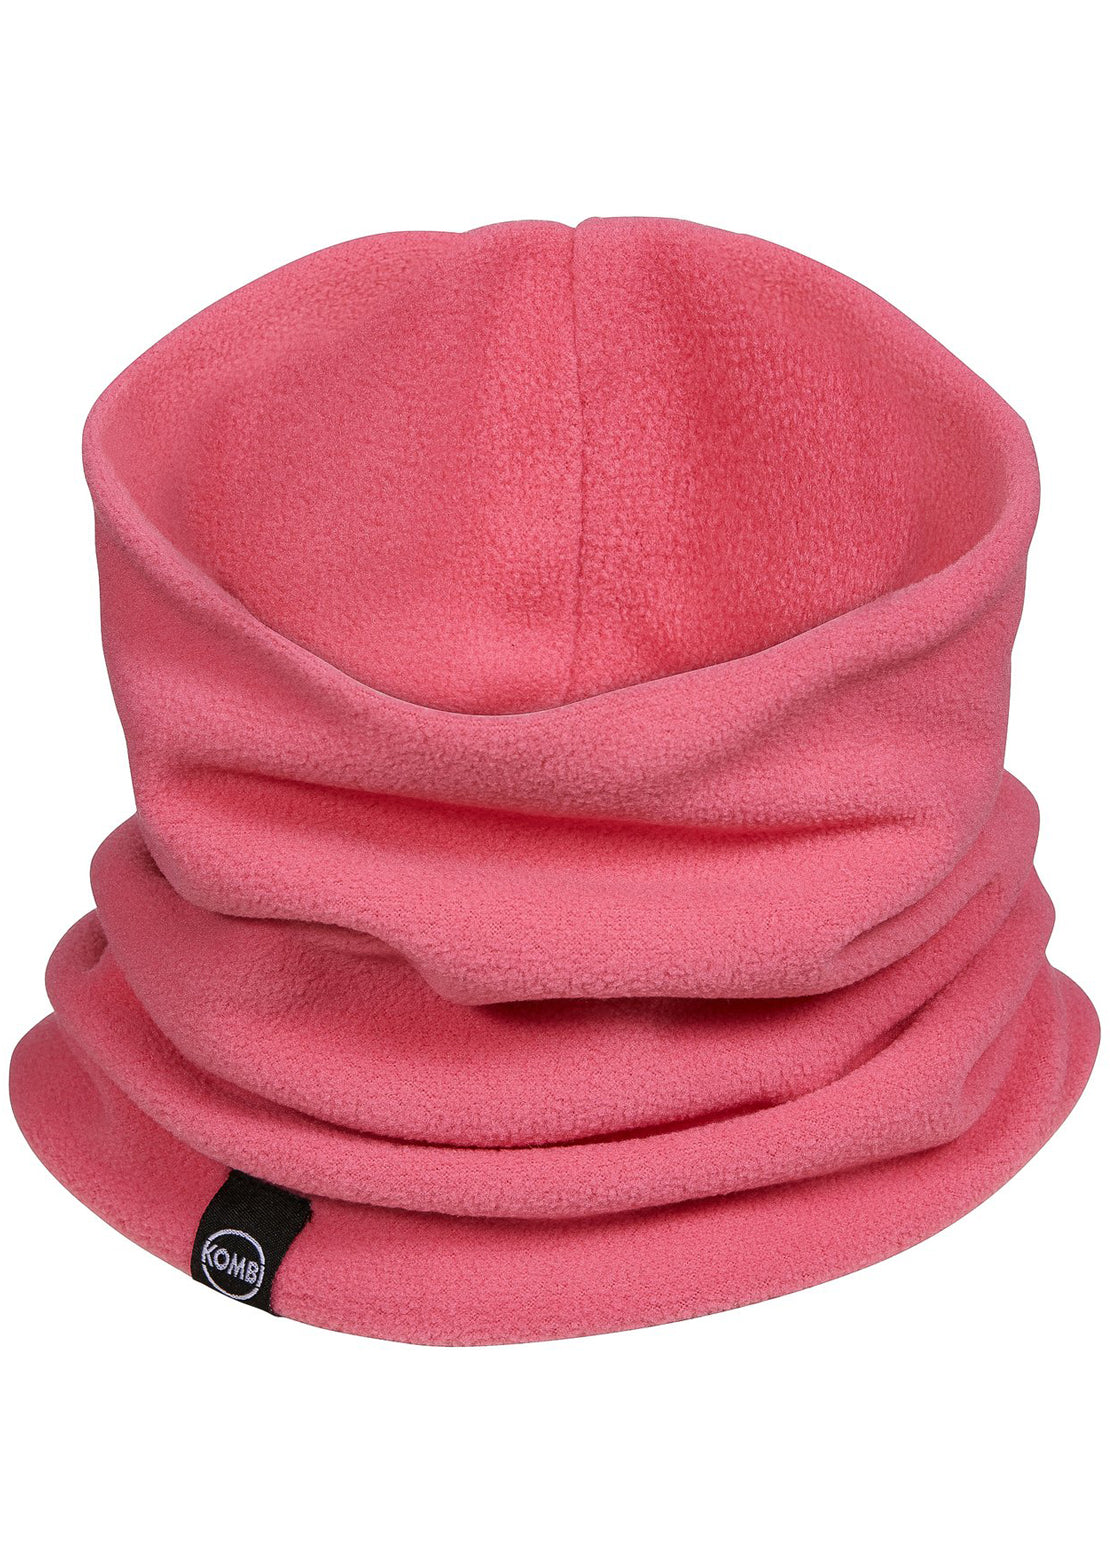 Kombi Junior The Comfiest Jr. Neck Warmer Hot Pink